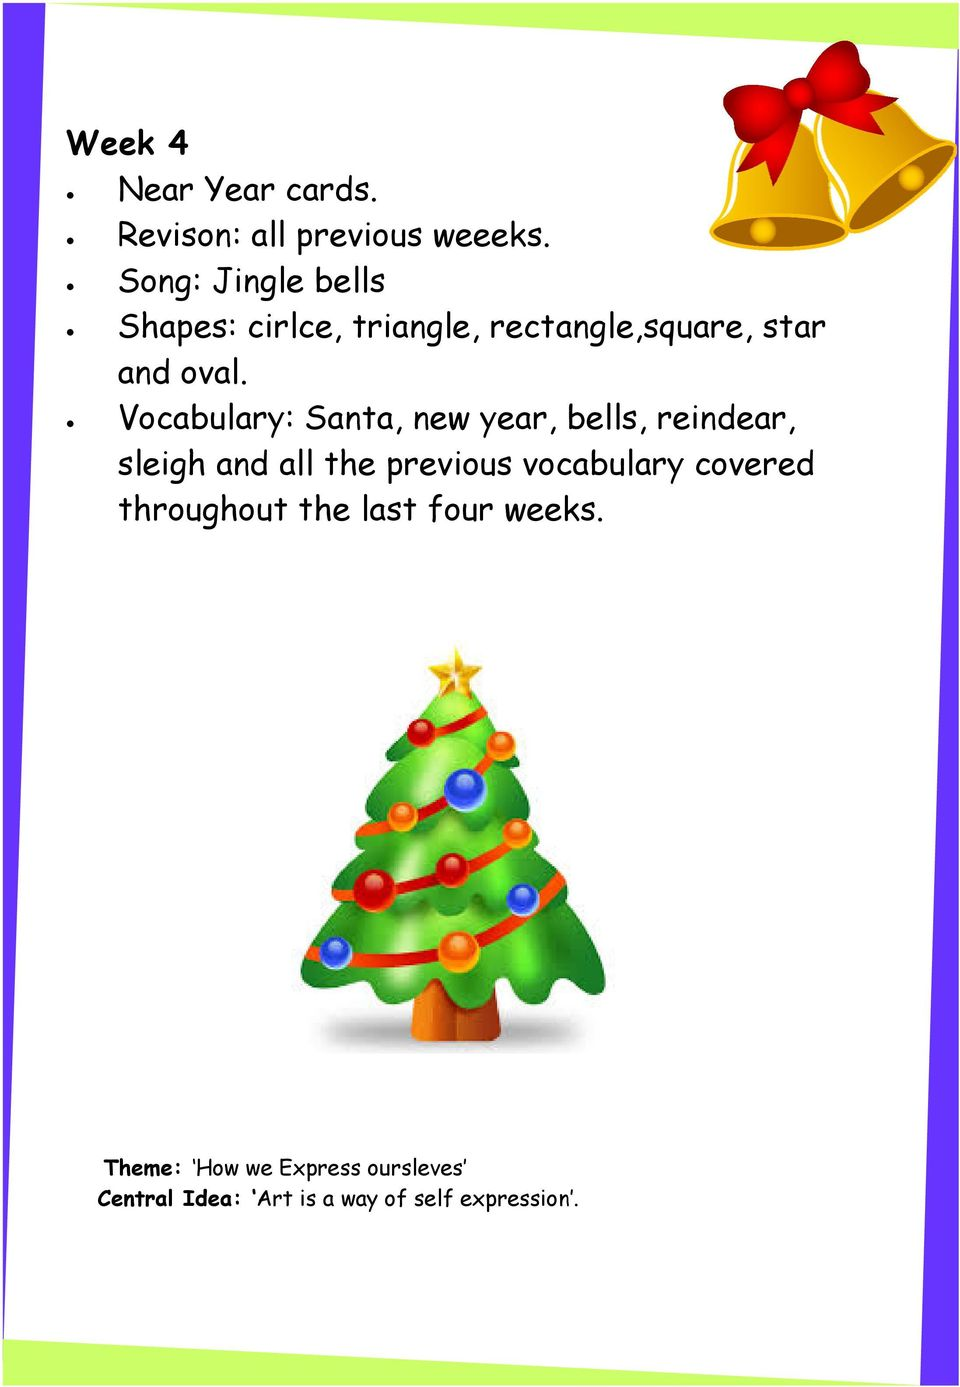 Vocabulary: Santa, new year, bells, reindear, sleigh and all the previous